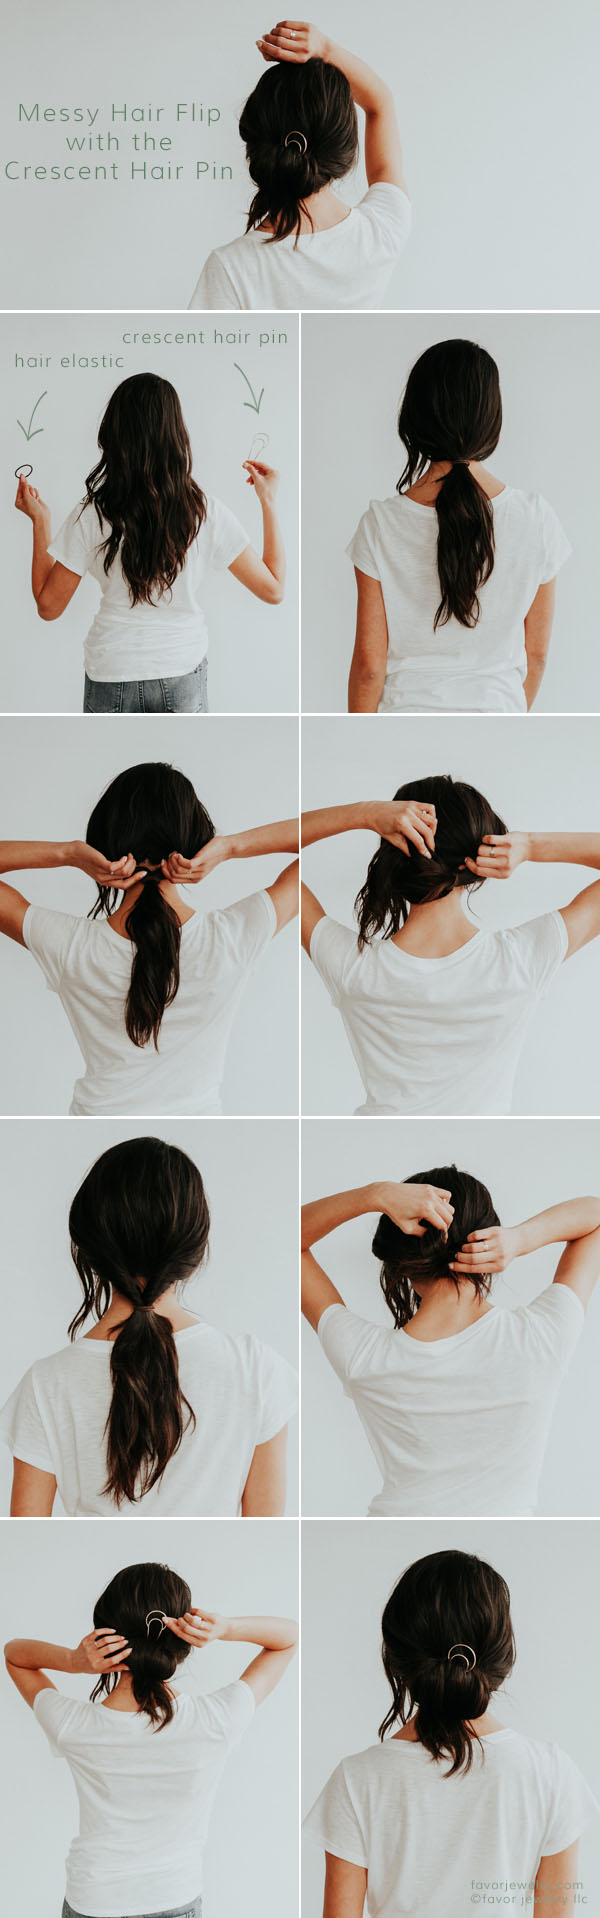 Messy Hair Flip with the Crescent Hair Pin | Favor Jewelry